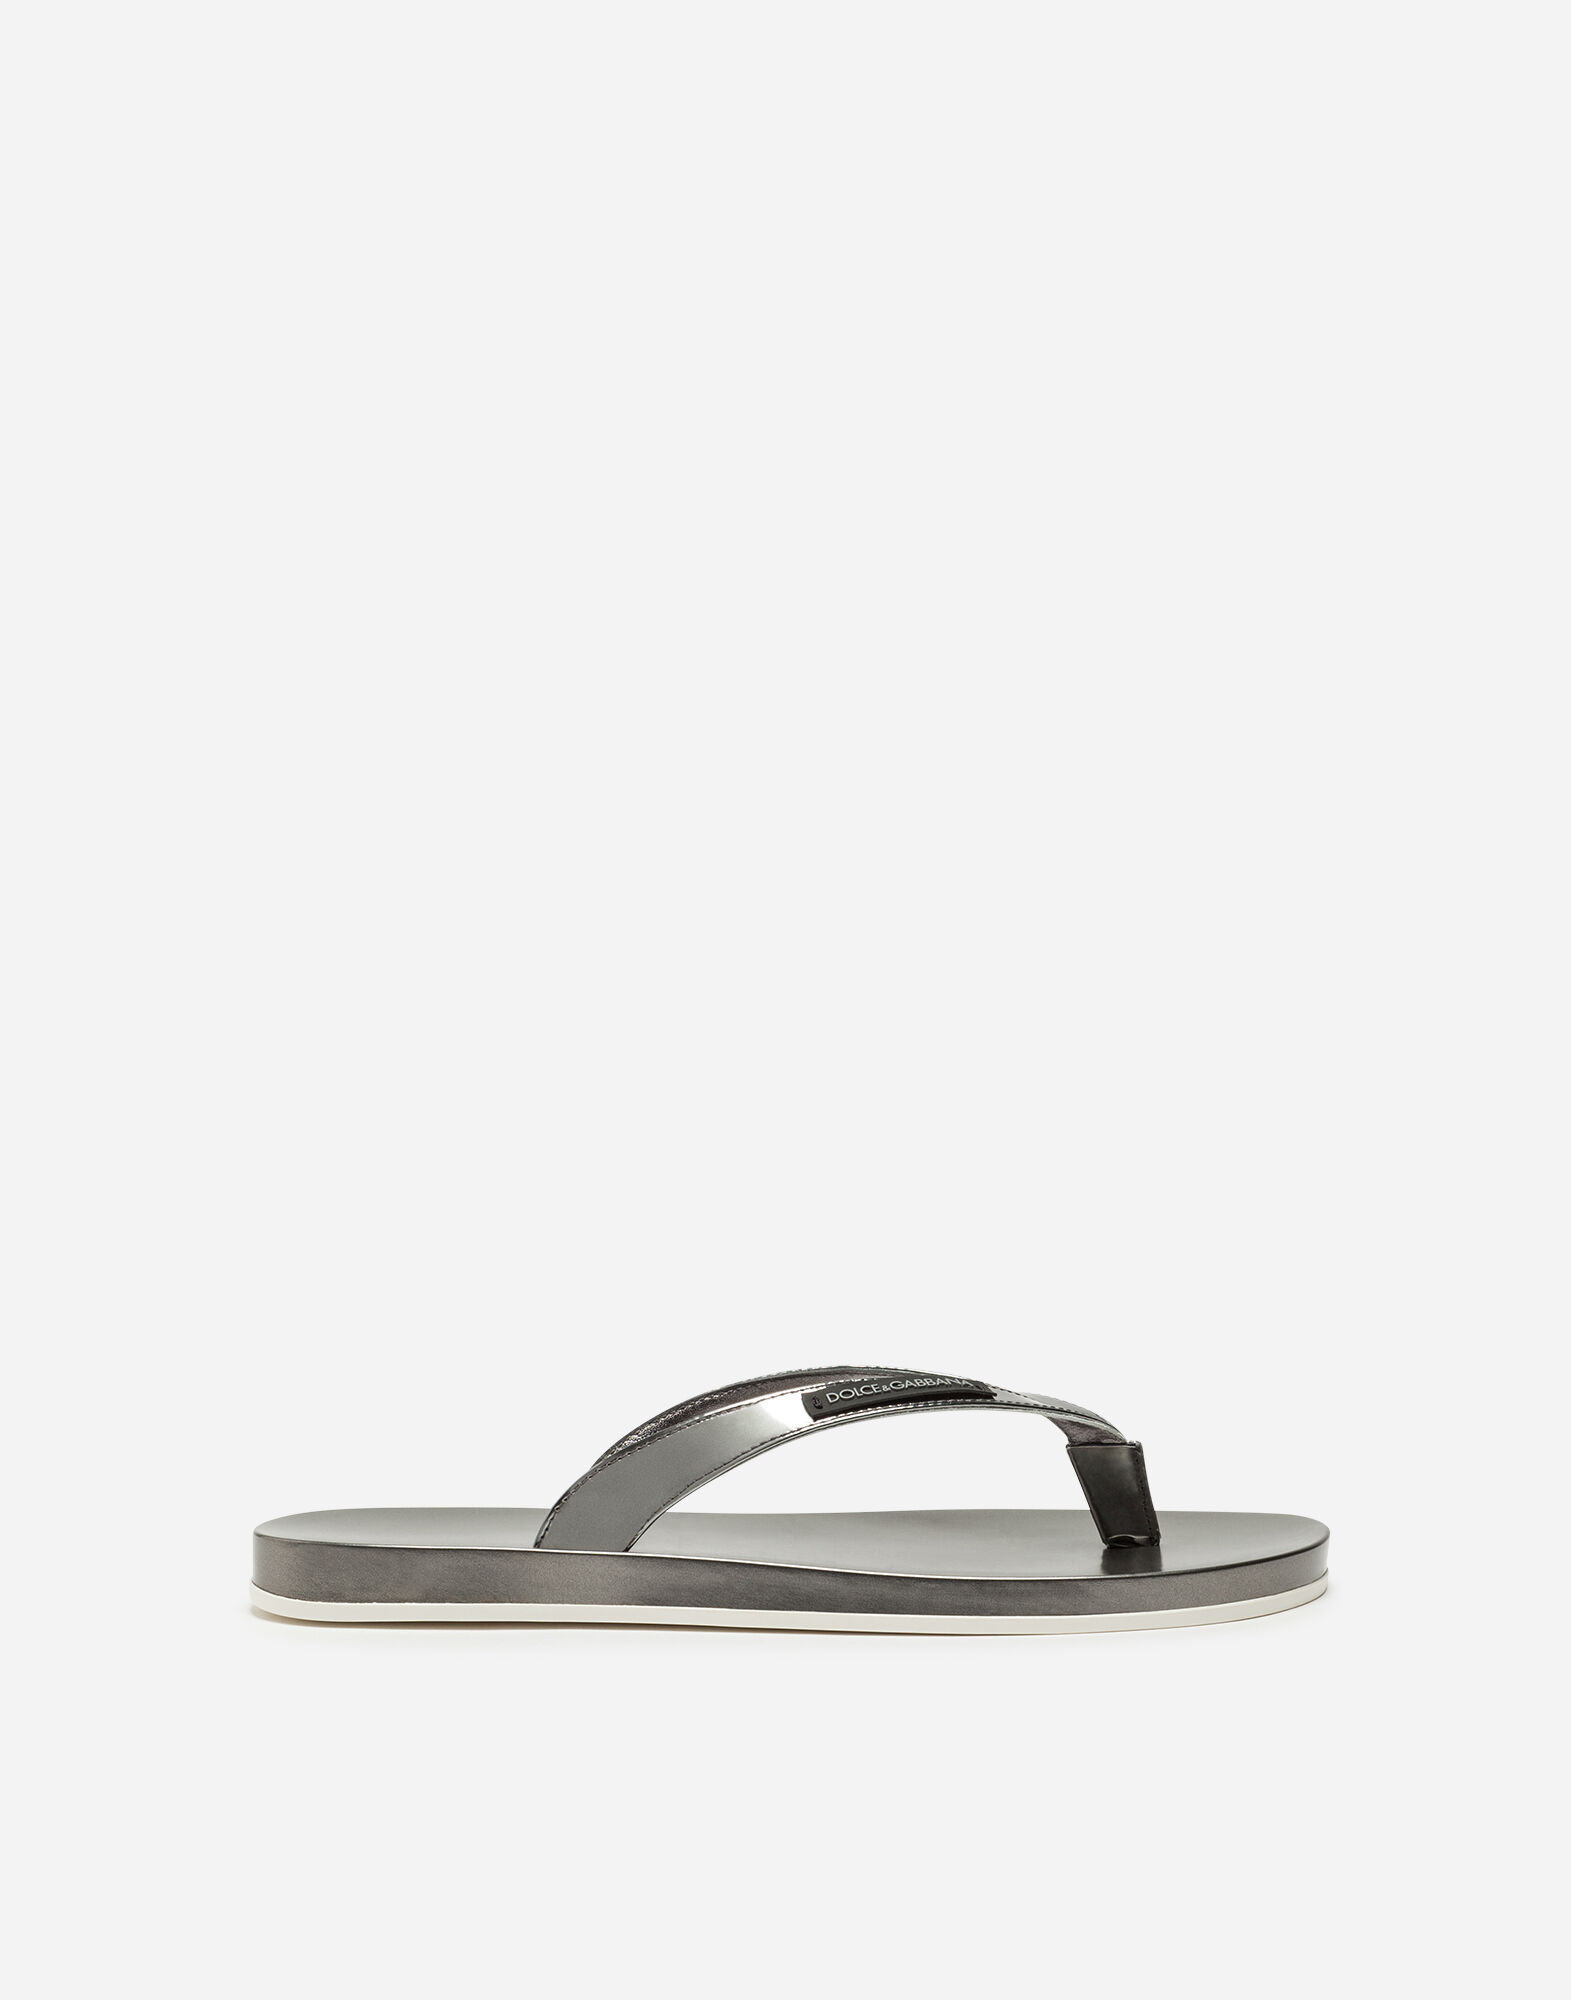 THONG SANDALS IN RUBBER AND MIRRORED CALFSKIN from DOLCE & GABBANA